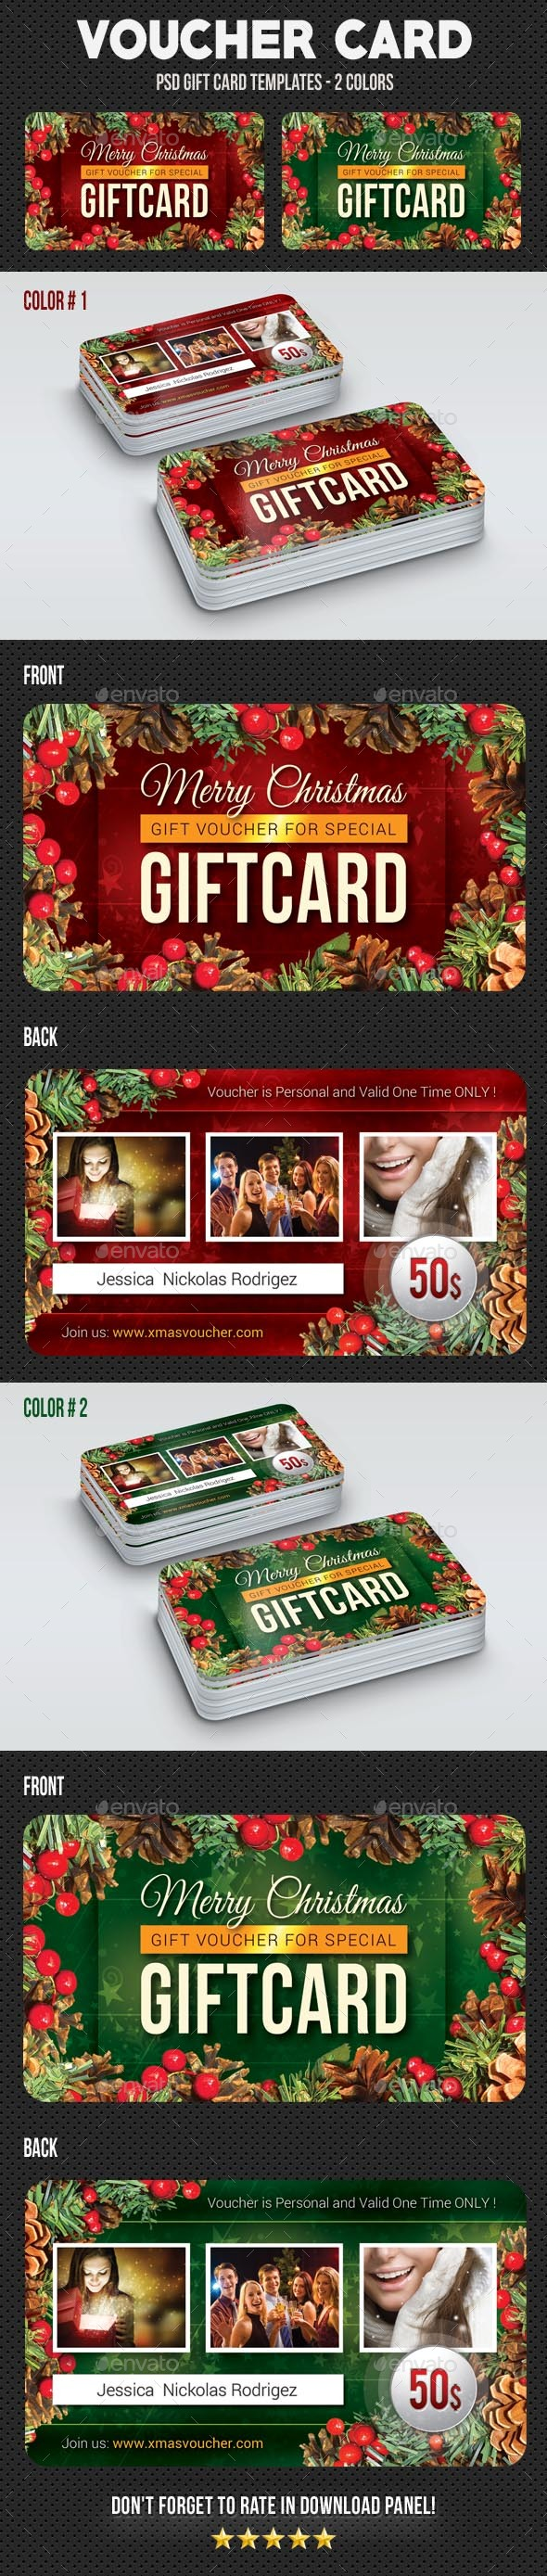 Christmas Voucher Card 2 - Cards & Invites Print Templates